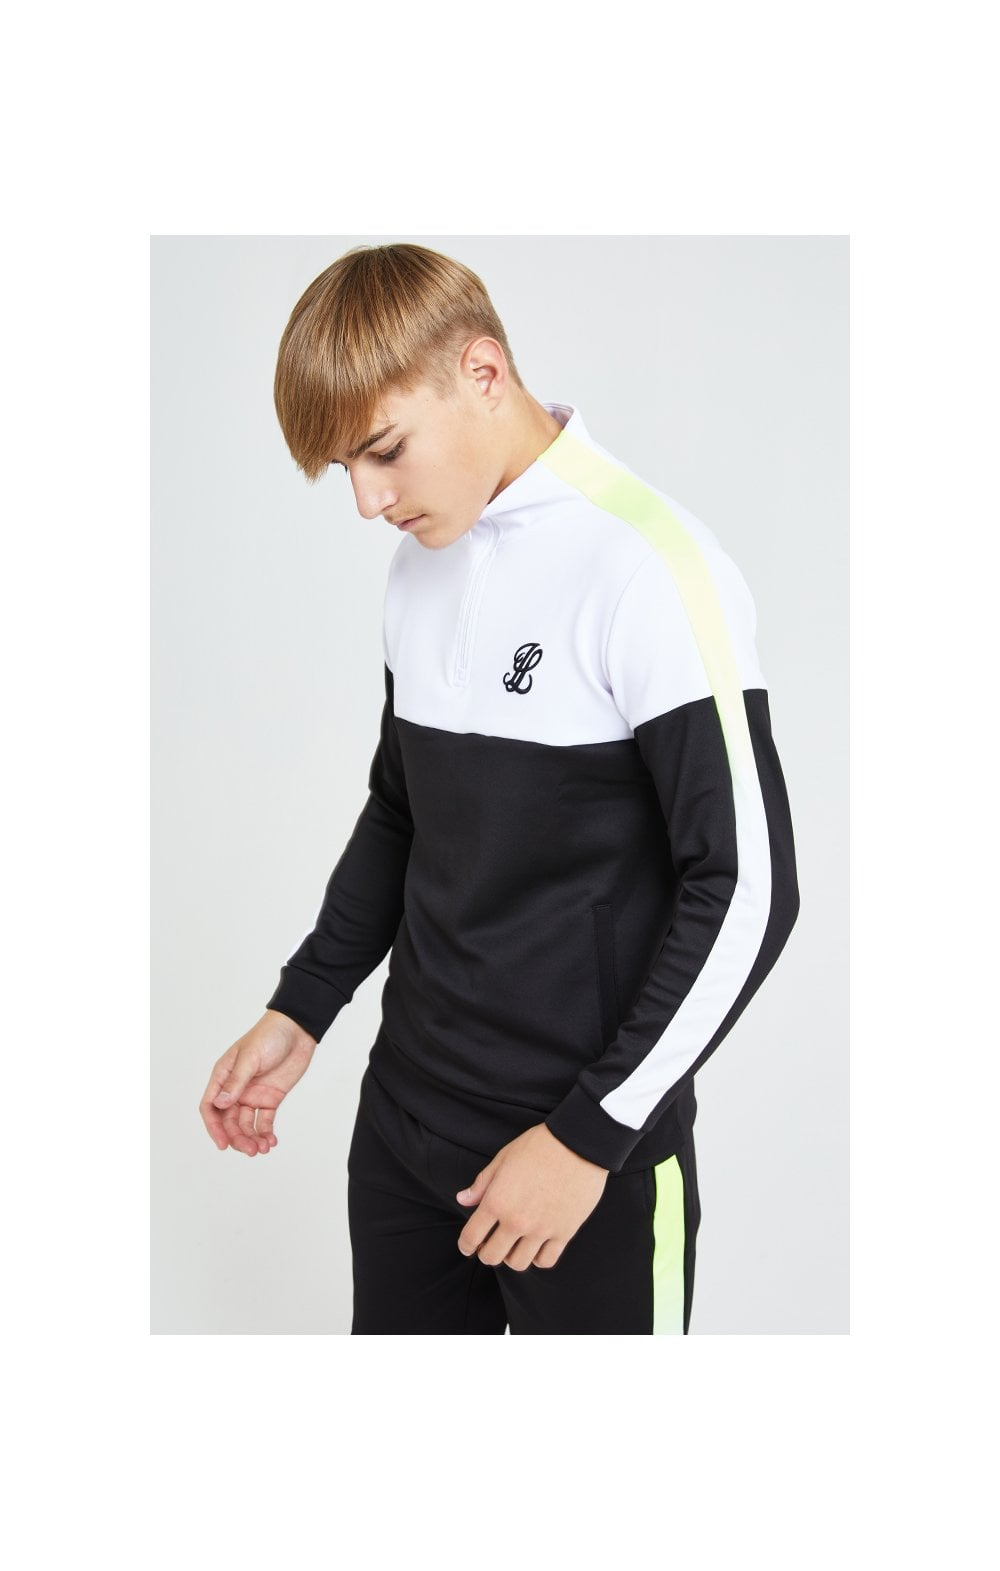 Illusive London Fade Funnel Neck Hoodie - Black,White & Neon Yellow (4)